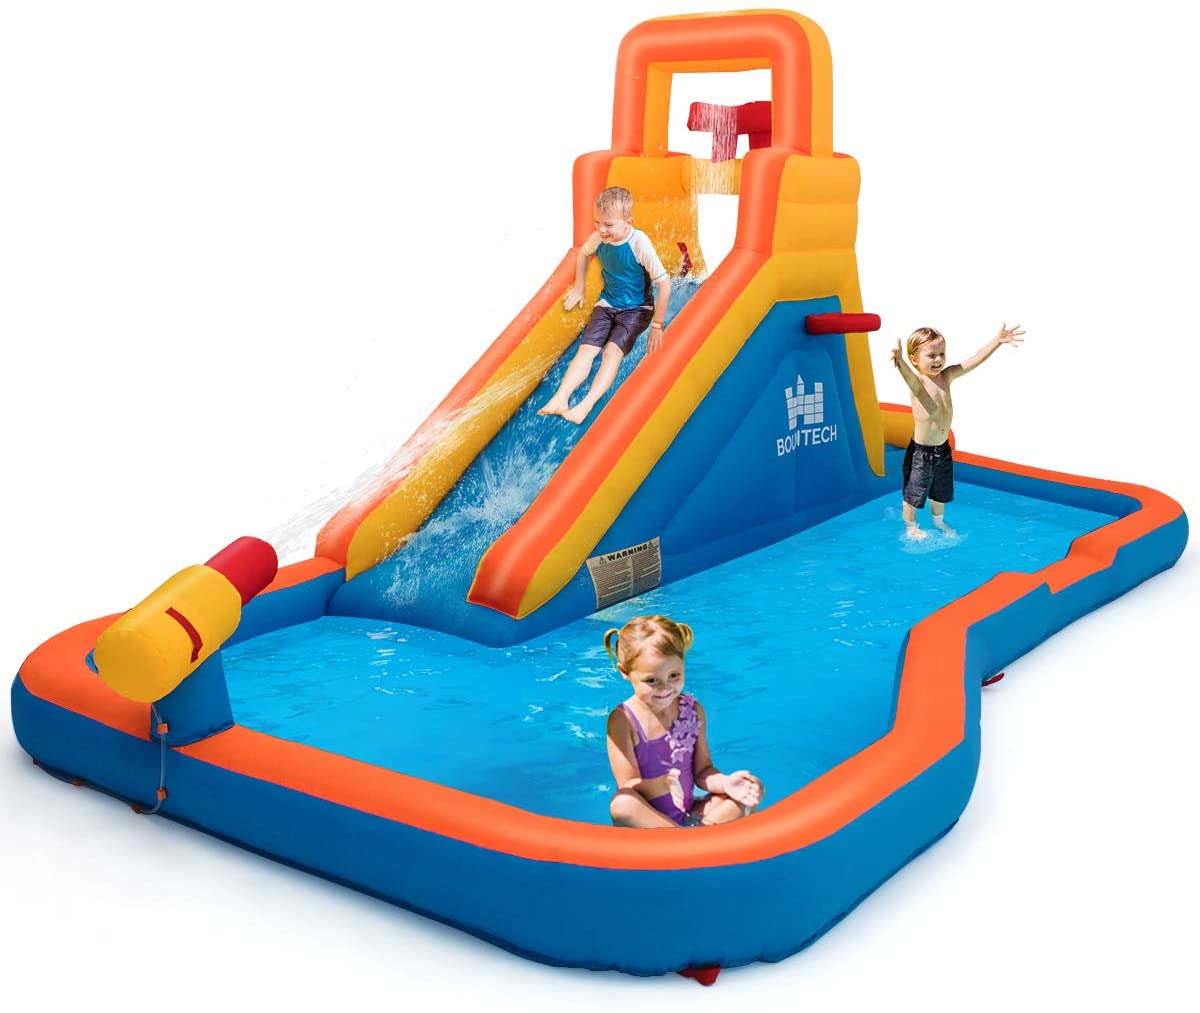 Costzon Inflatable Water Slide, 5-in-1 Pool Bouncer w/ Climbing Wall, Basketball Hoop, Pouring Sink, Water Cannon, Including Oxford Carry Bag, Repairing Kit, Stakes, Hose (Without Blower)